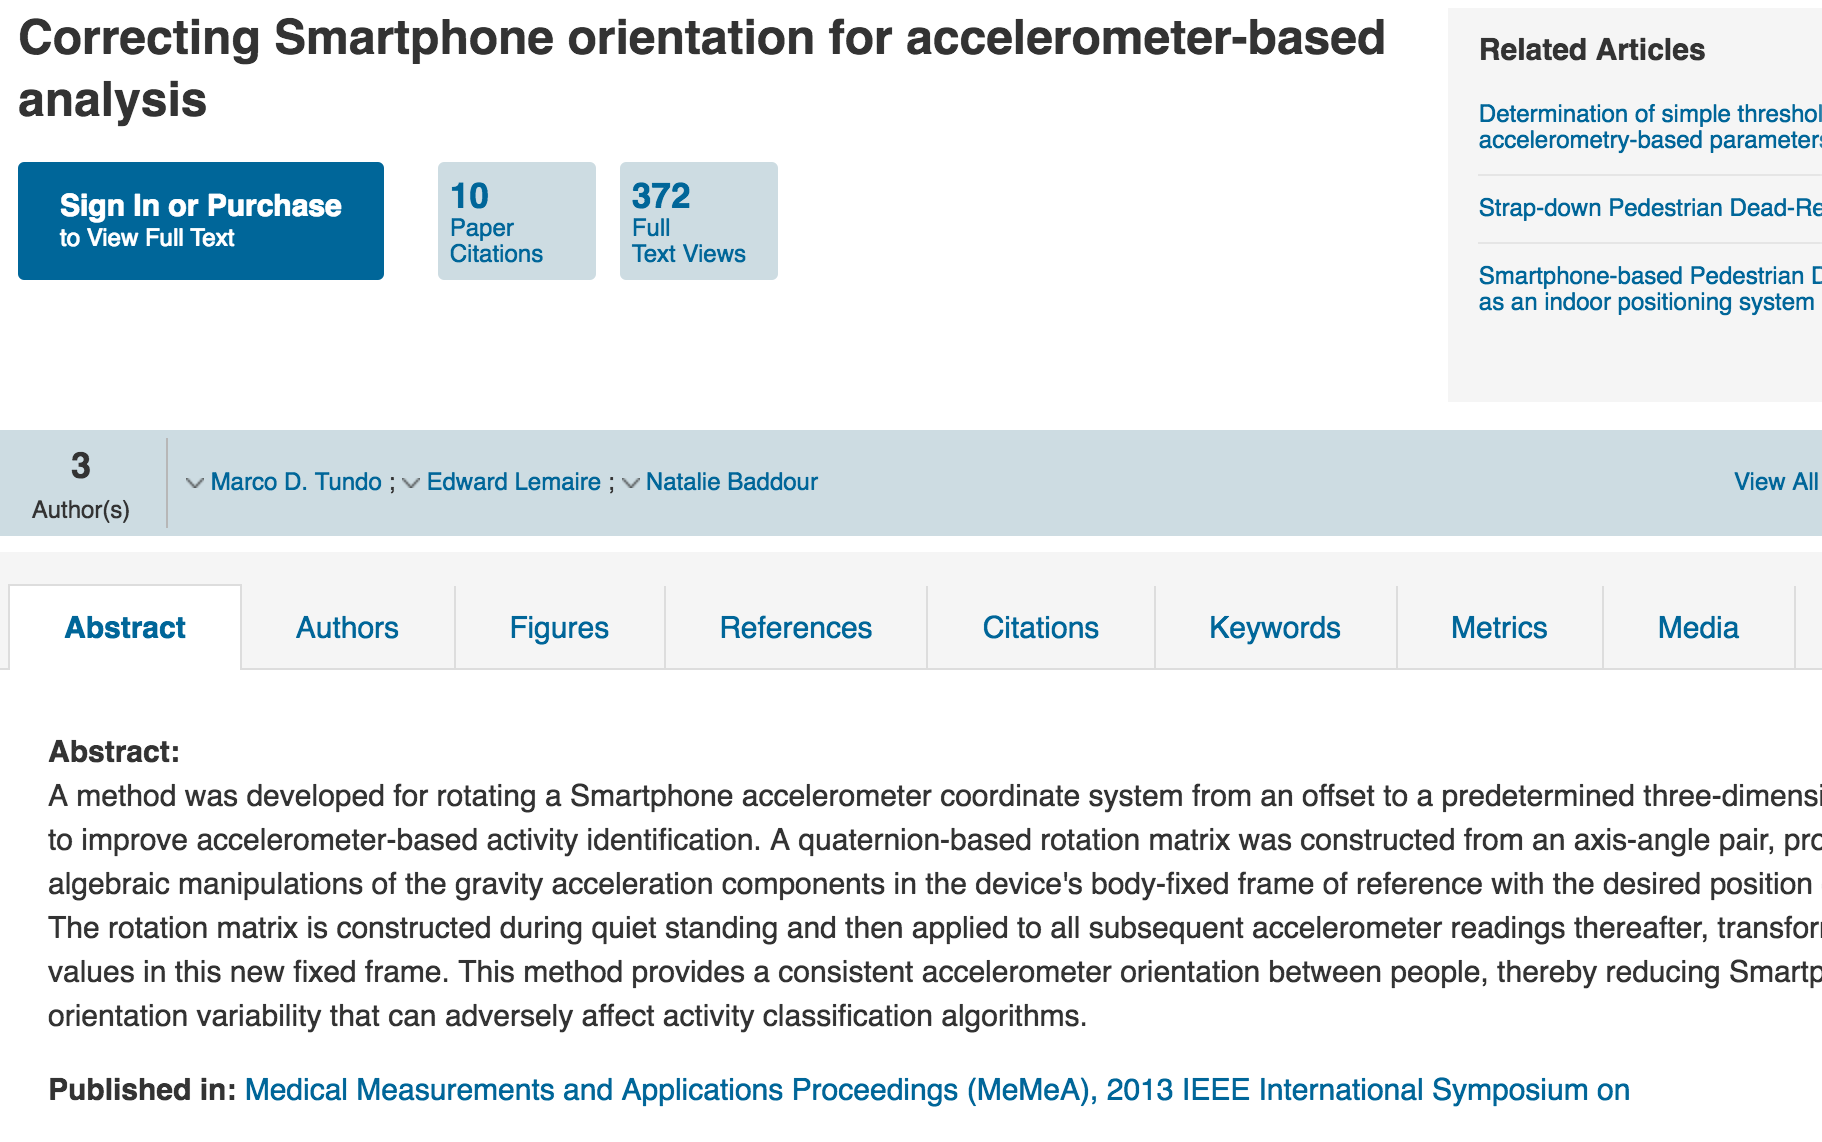 Correcting Smartphone orientation for accelerometer-based analysis